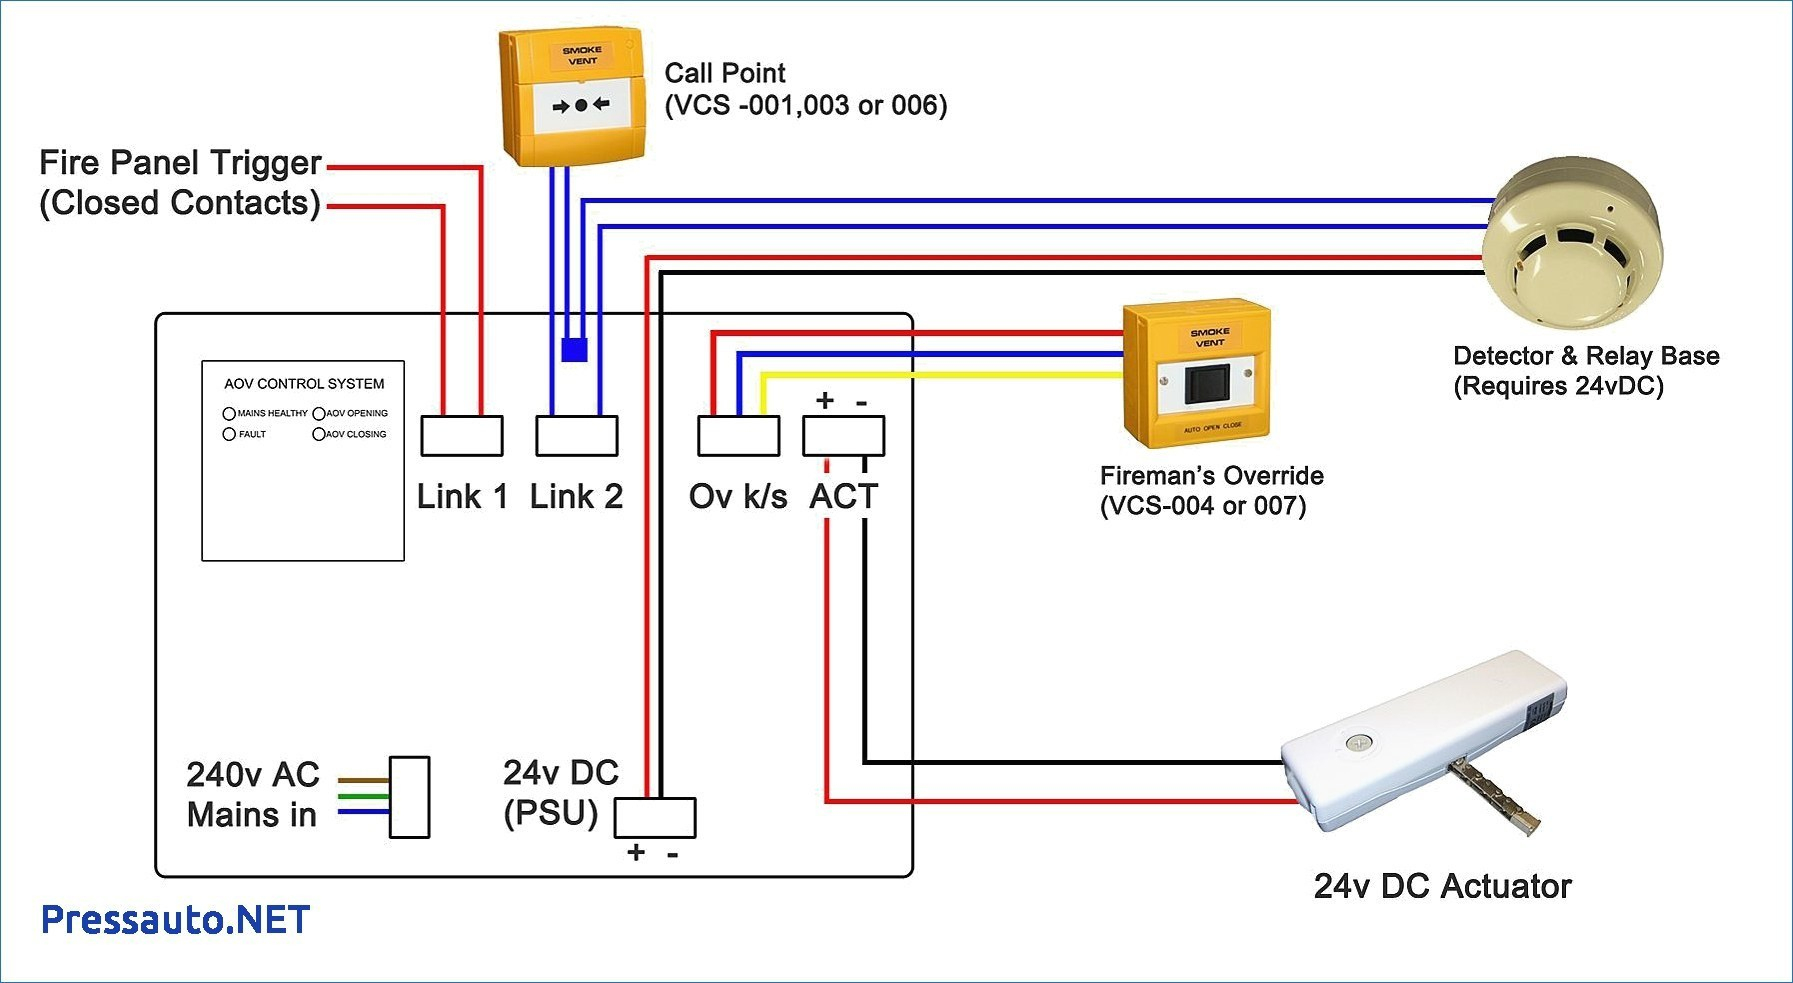 Addressable Smoke Detector Wiring Diagram | Wiring Diagram - Smoke Detector Wiring Diagram